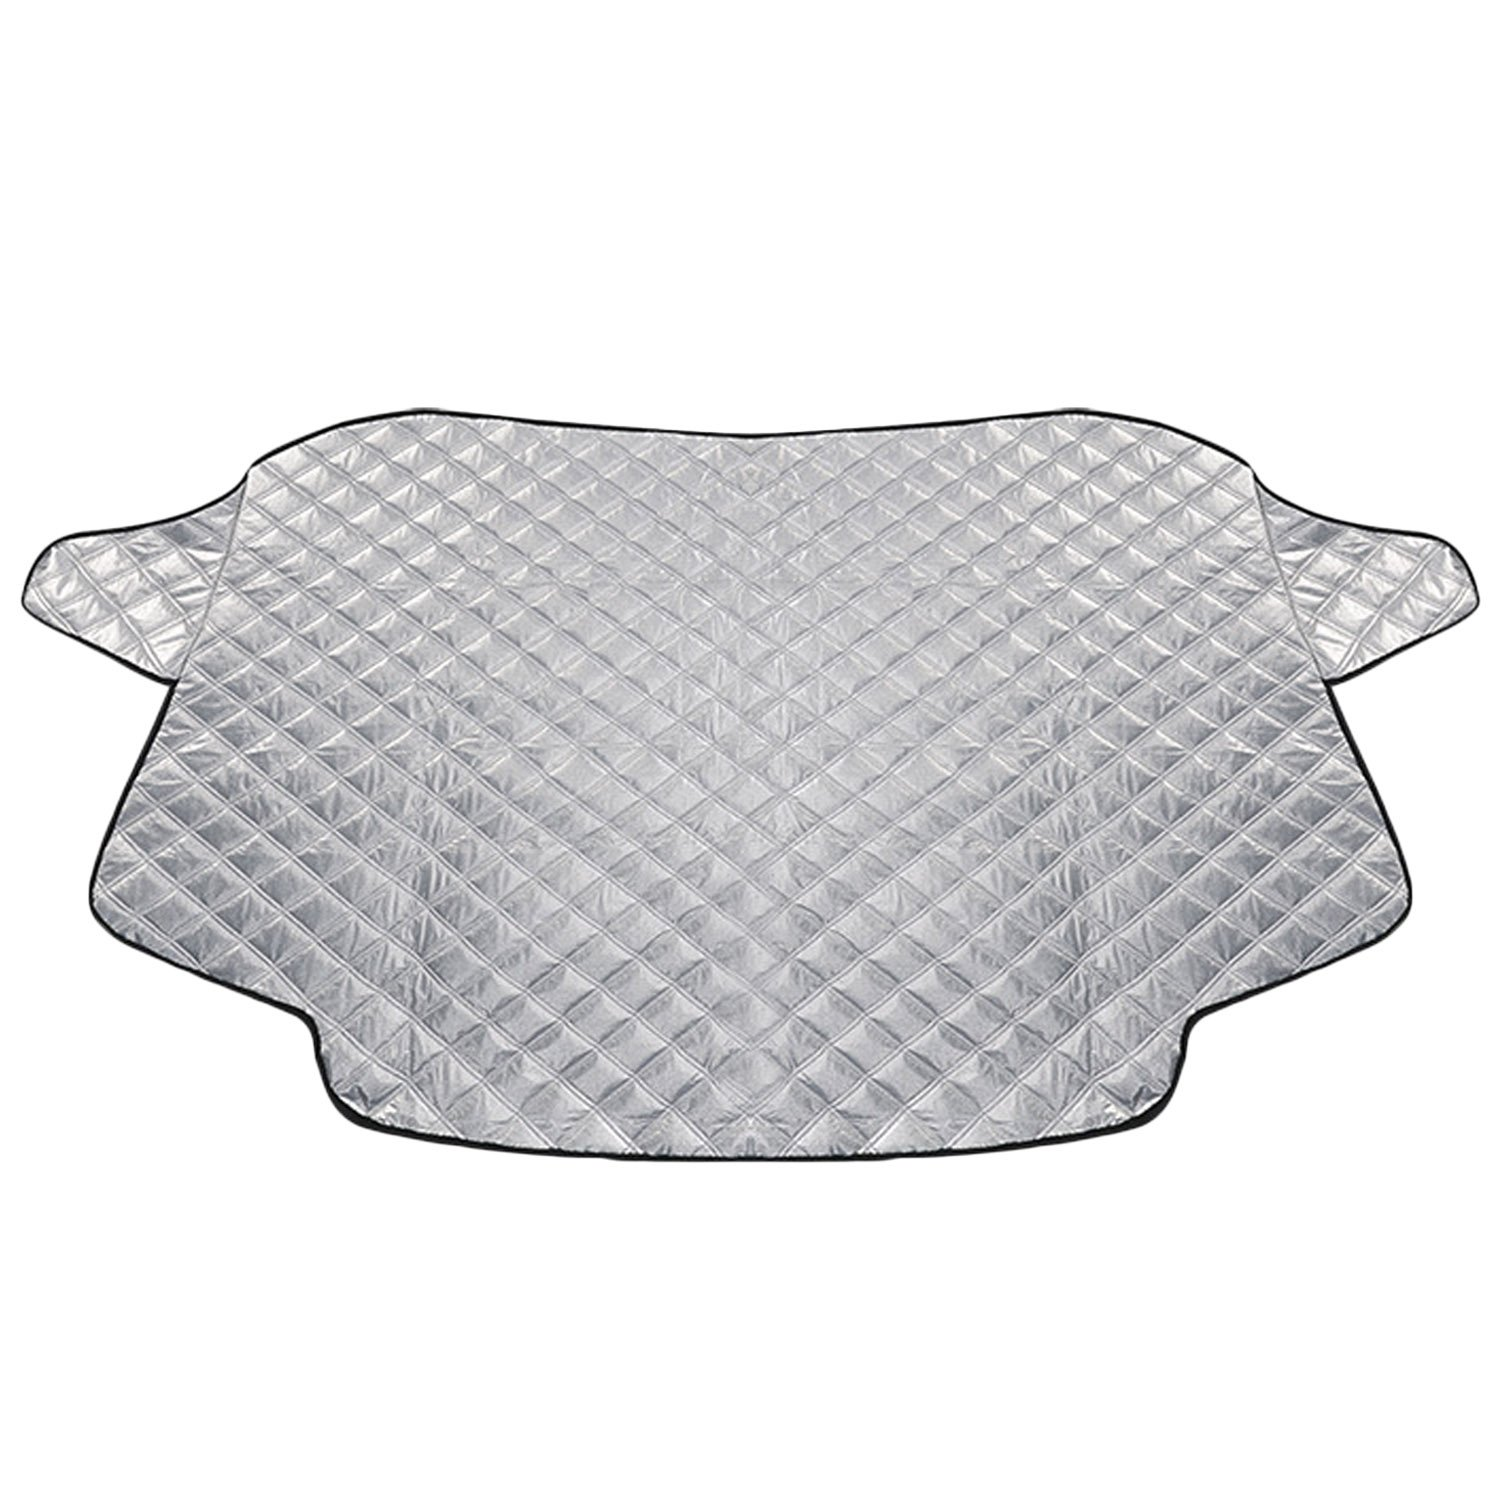 Snow Windshield Cover Aluminum Cotton Thickened Car Windshield Snow Cover Protector Ice Frost Guard Car Windshield Sunshade 100 x 147cm® Elisona